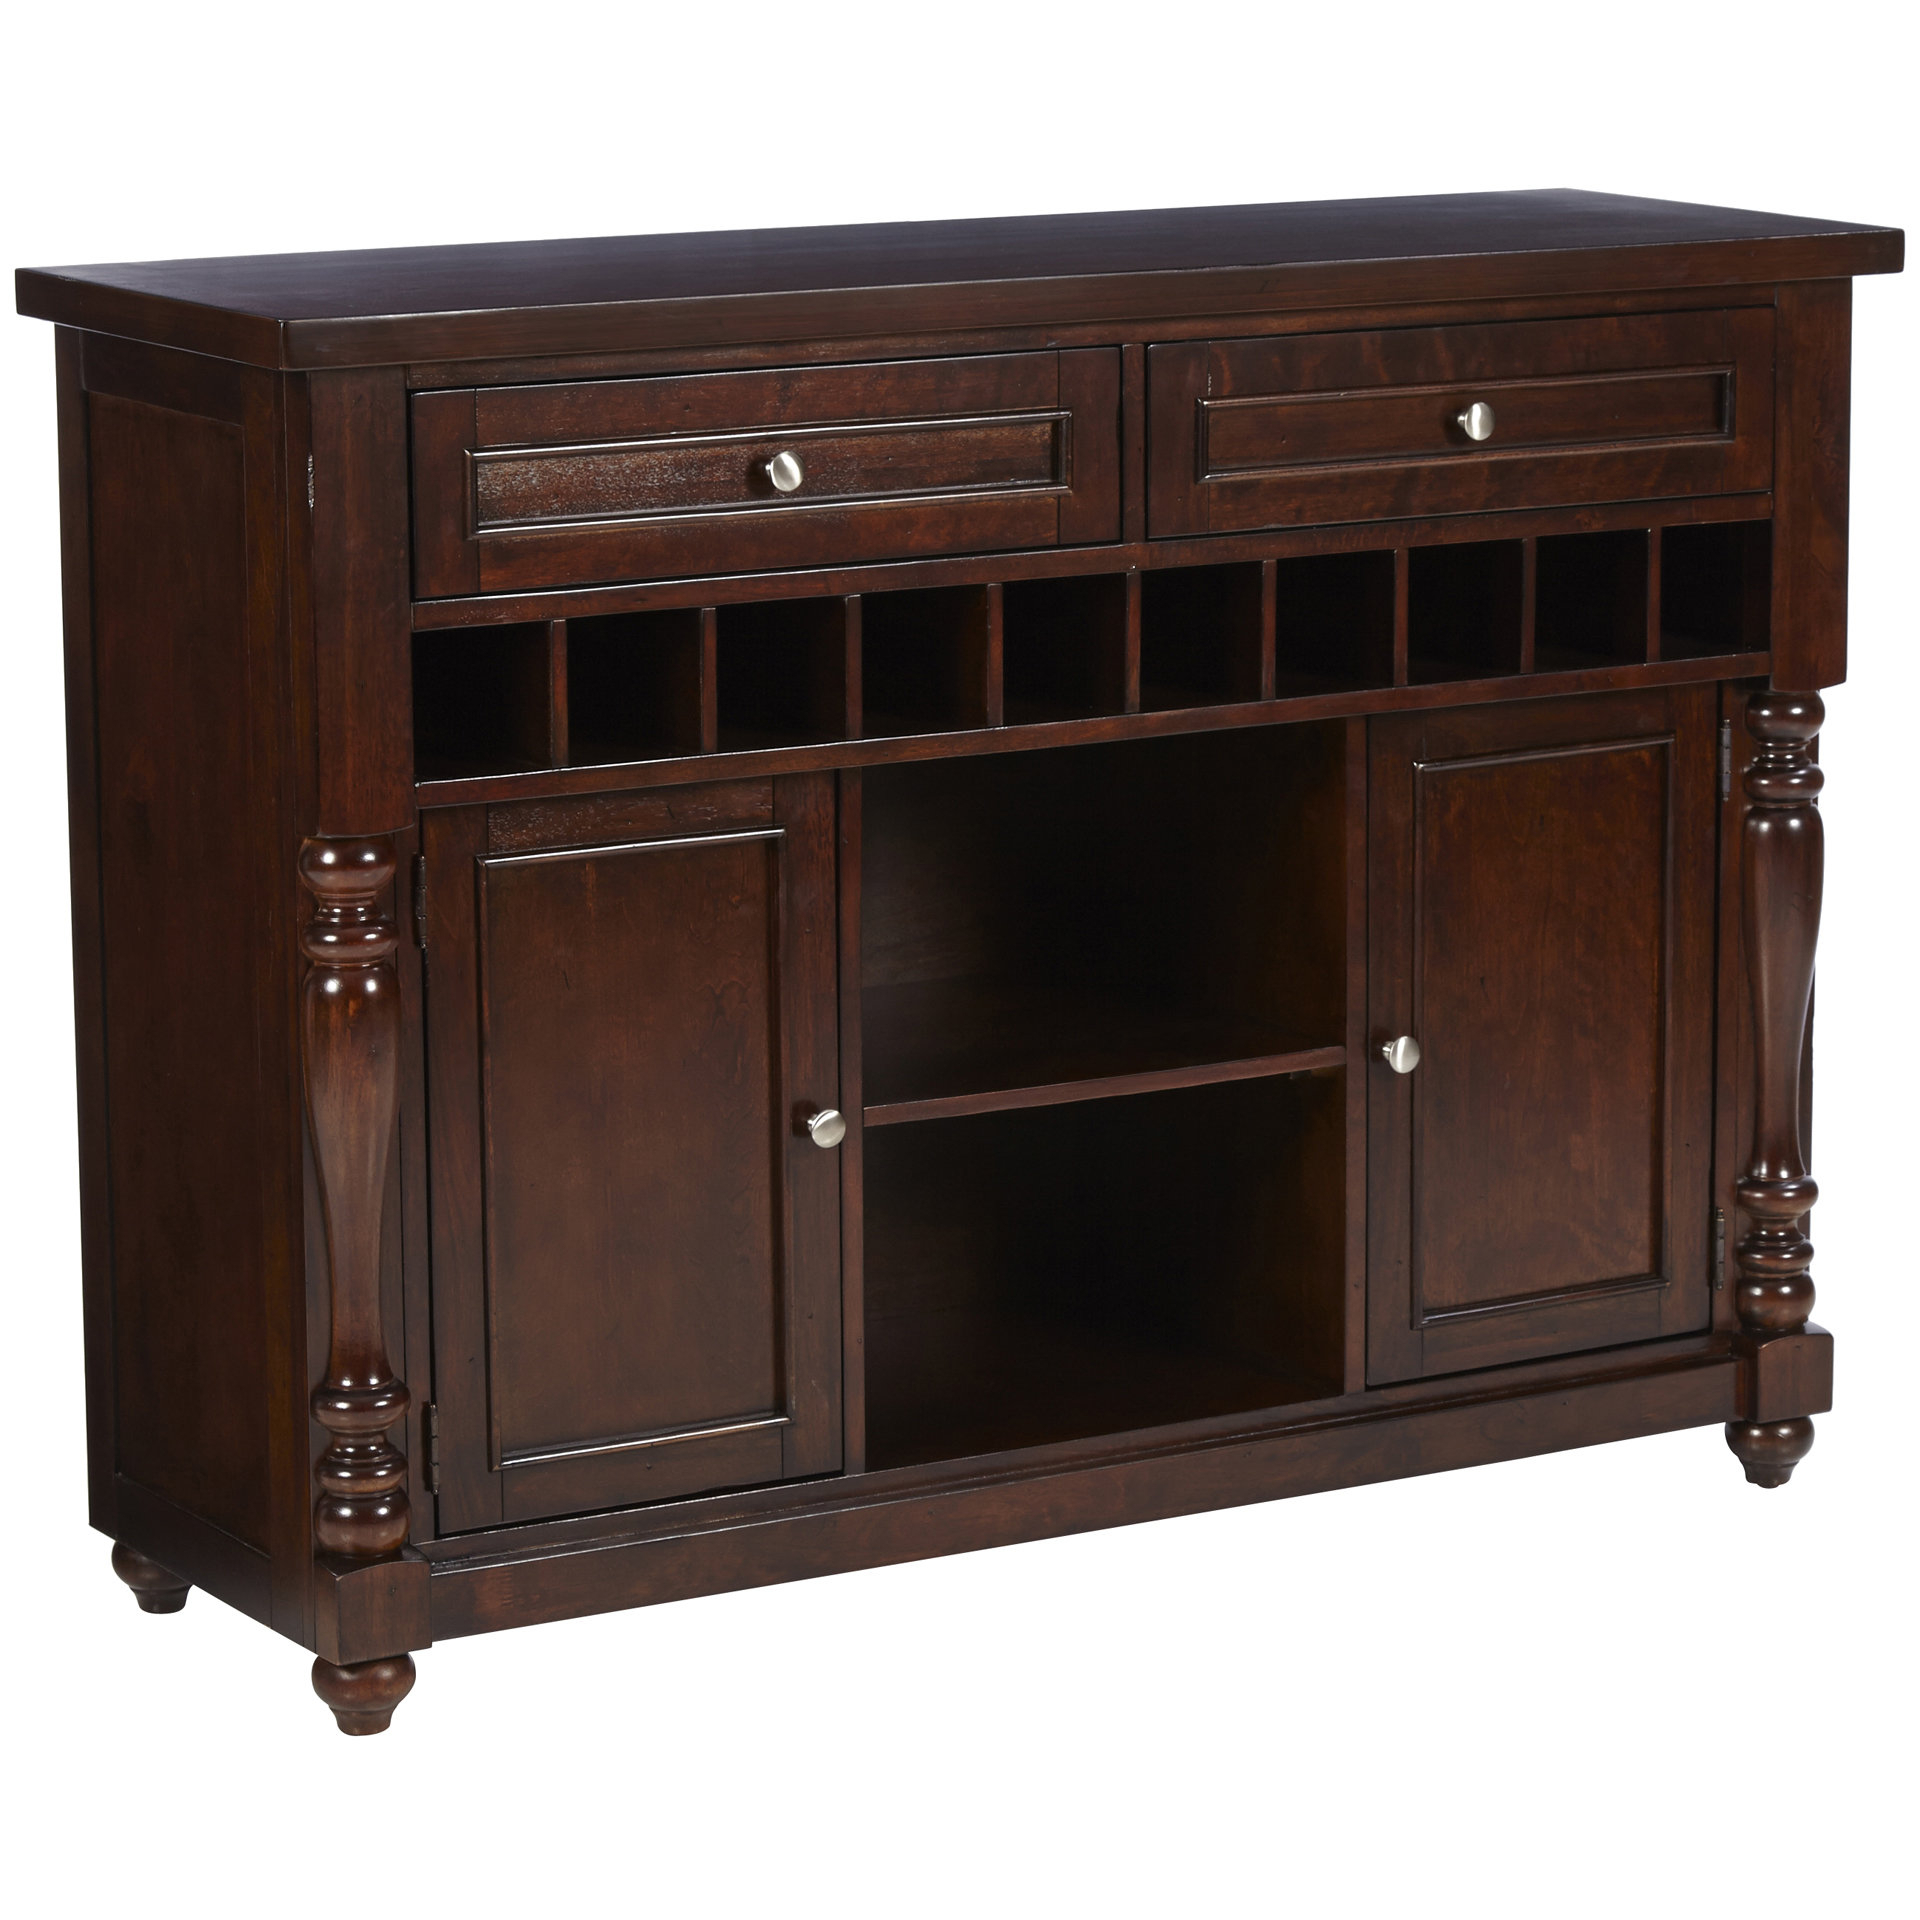 Chaffins Sideboards Throughout Most Recently Released Farmhouse & Rustic Medium Brown Wood Sideboards & Buffets (View 8 of 20)